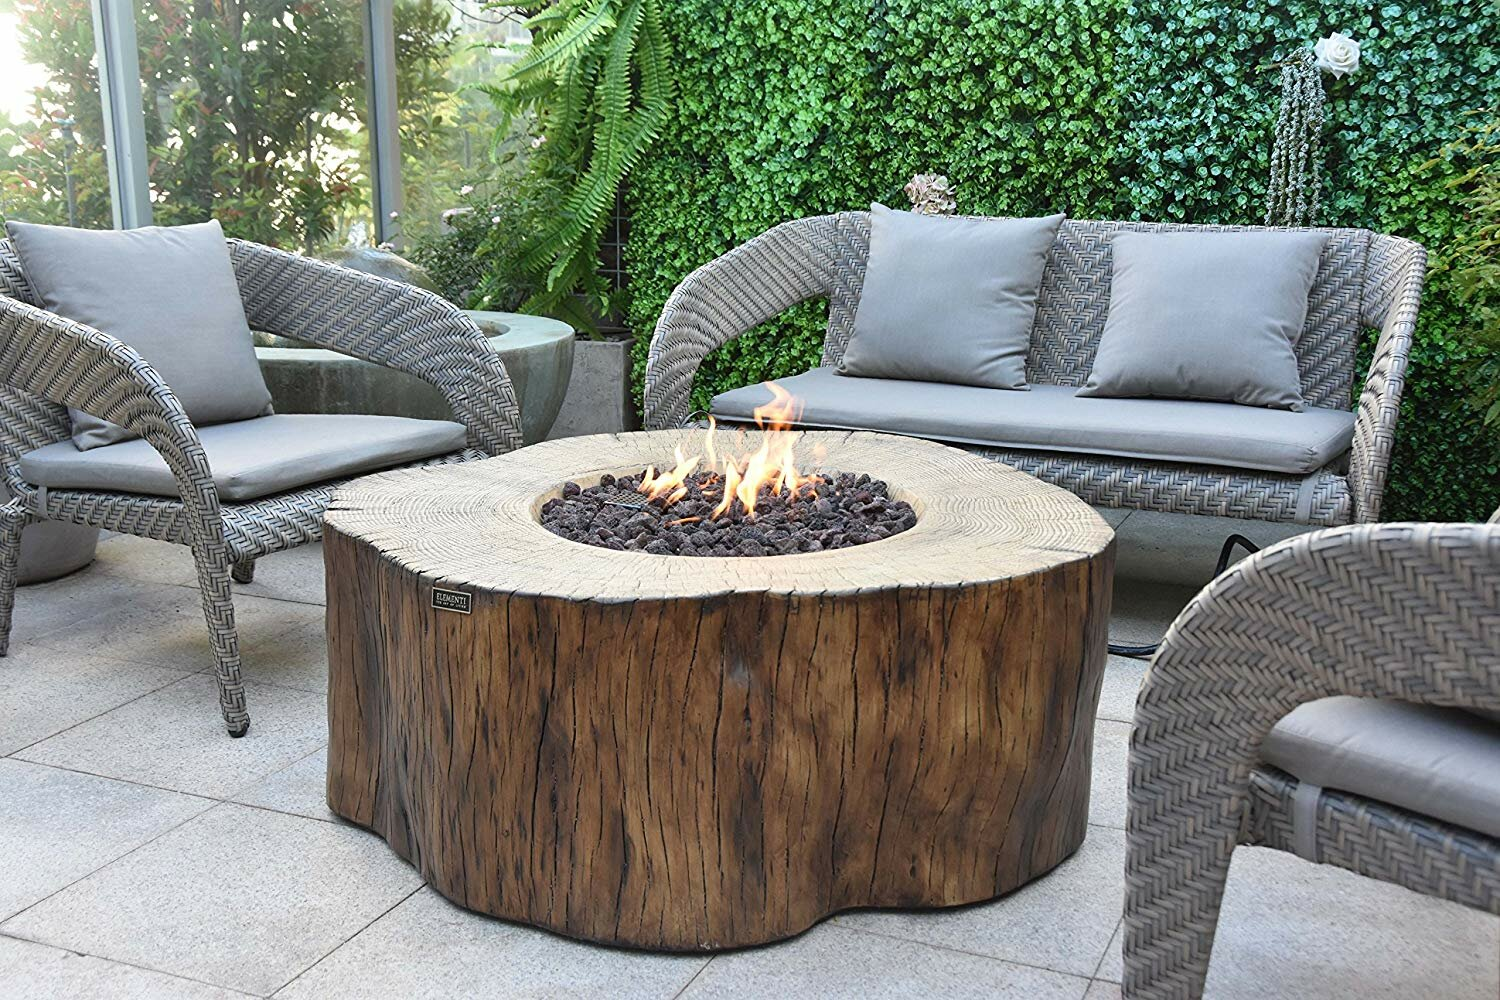 Claxton Outdoor Concrete Fire Pit